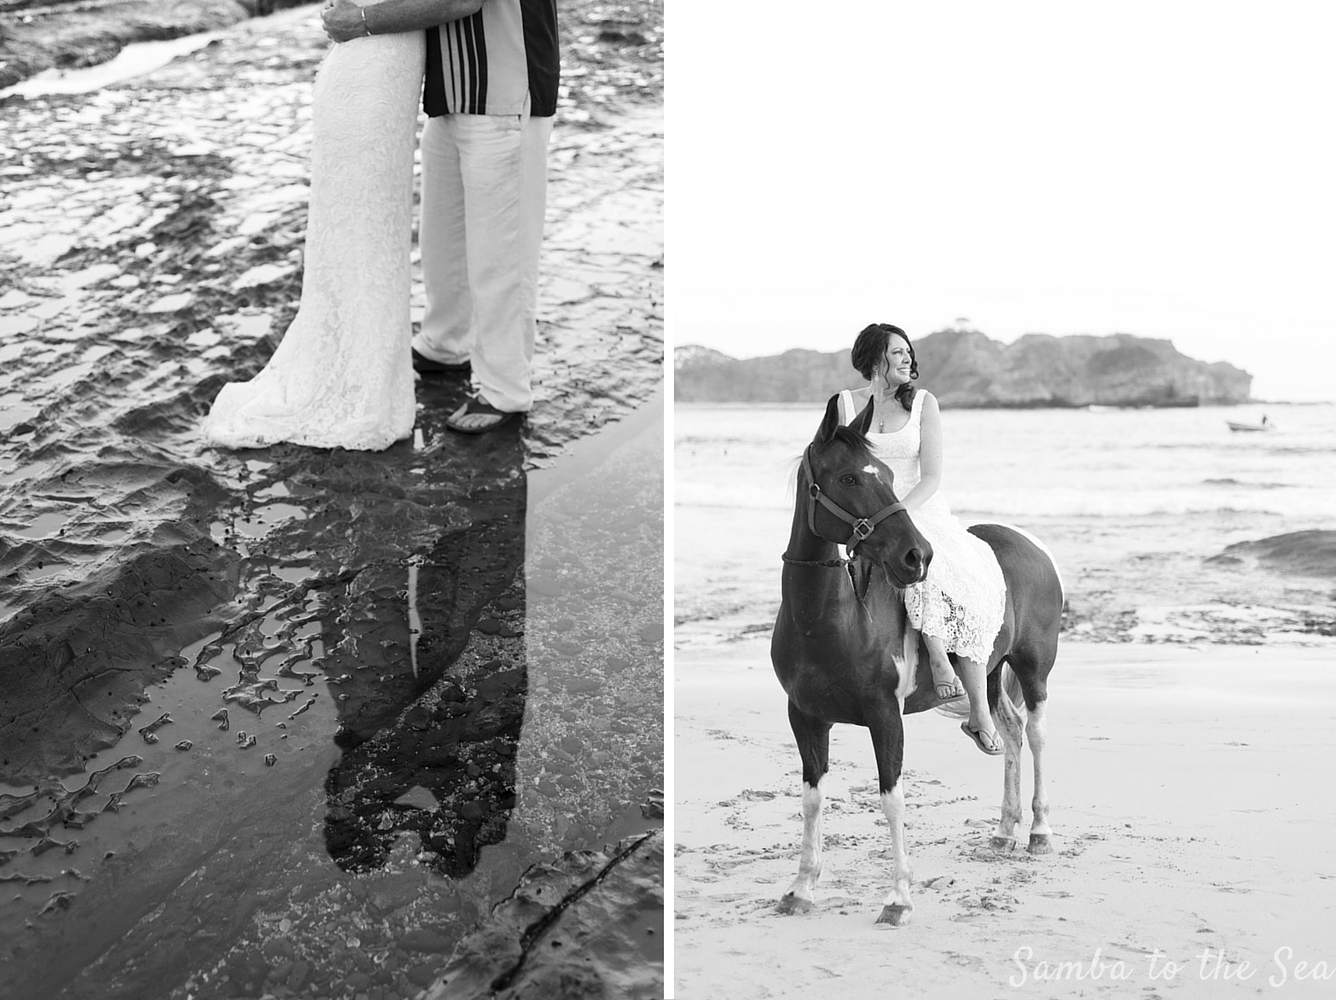 Bride on horse on the beach in Nosara, Costa Rica. Photographed by Kristen M. Brown, Samba to the Sea Photography.